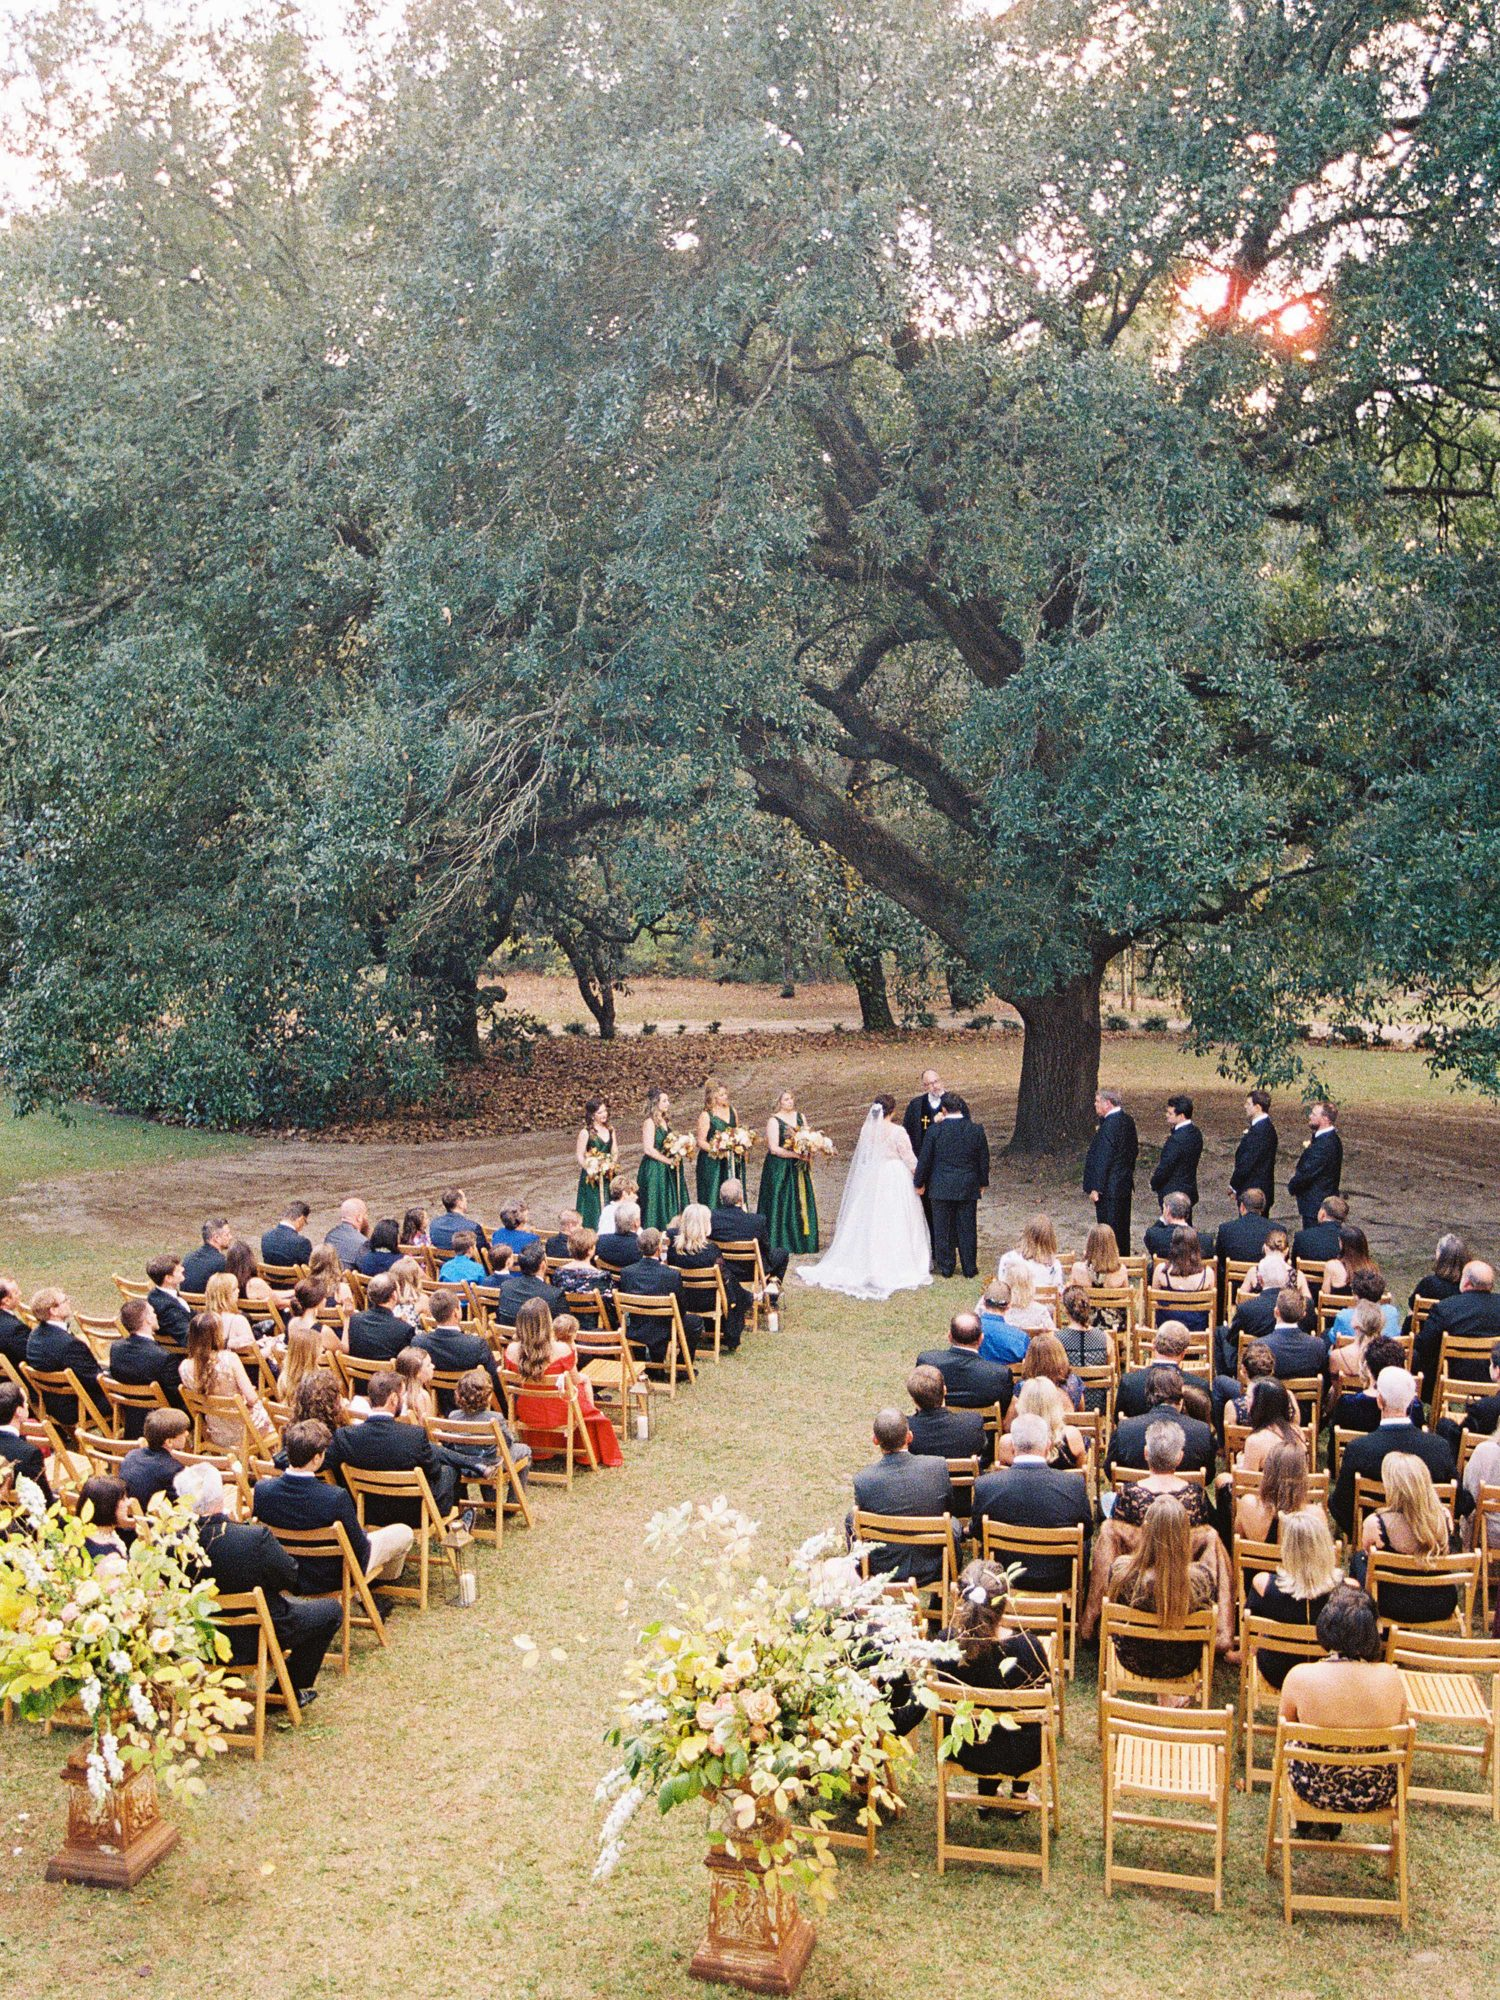 madeline brad wedding ceremony vows